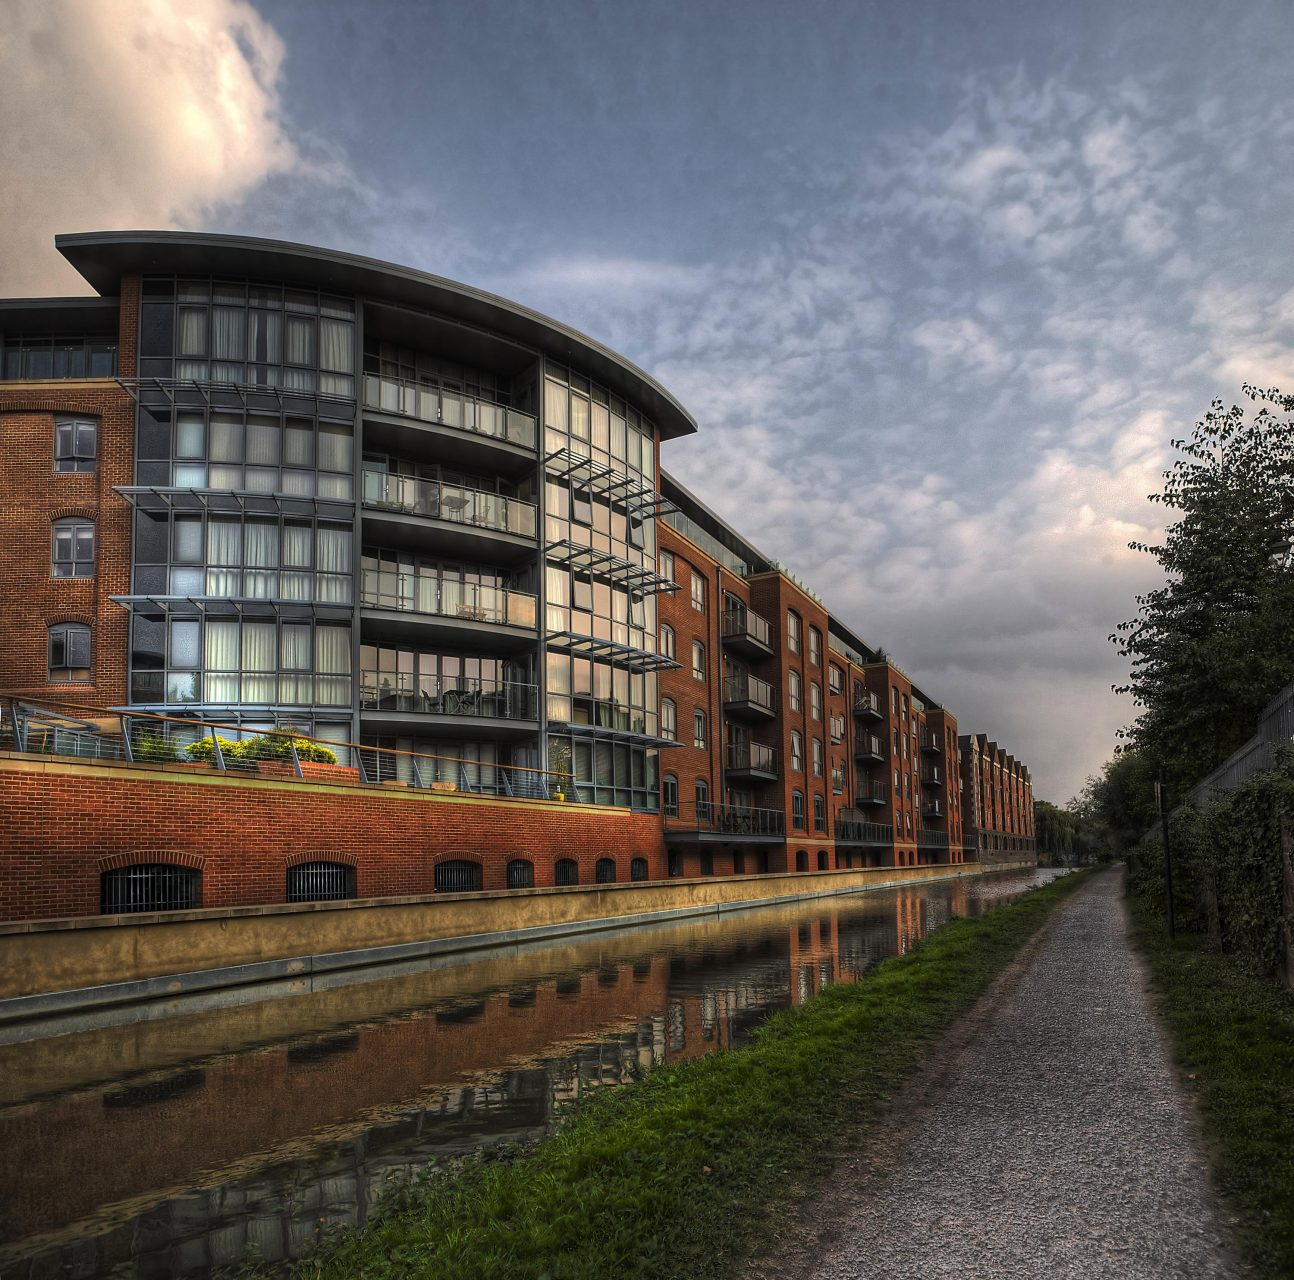 oxford_canal1